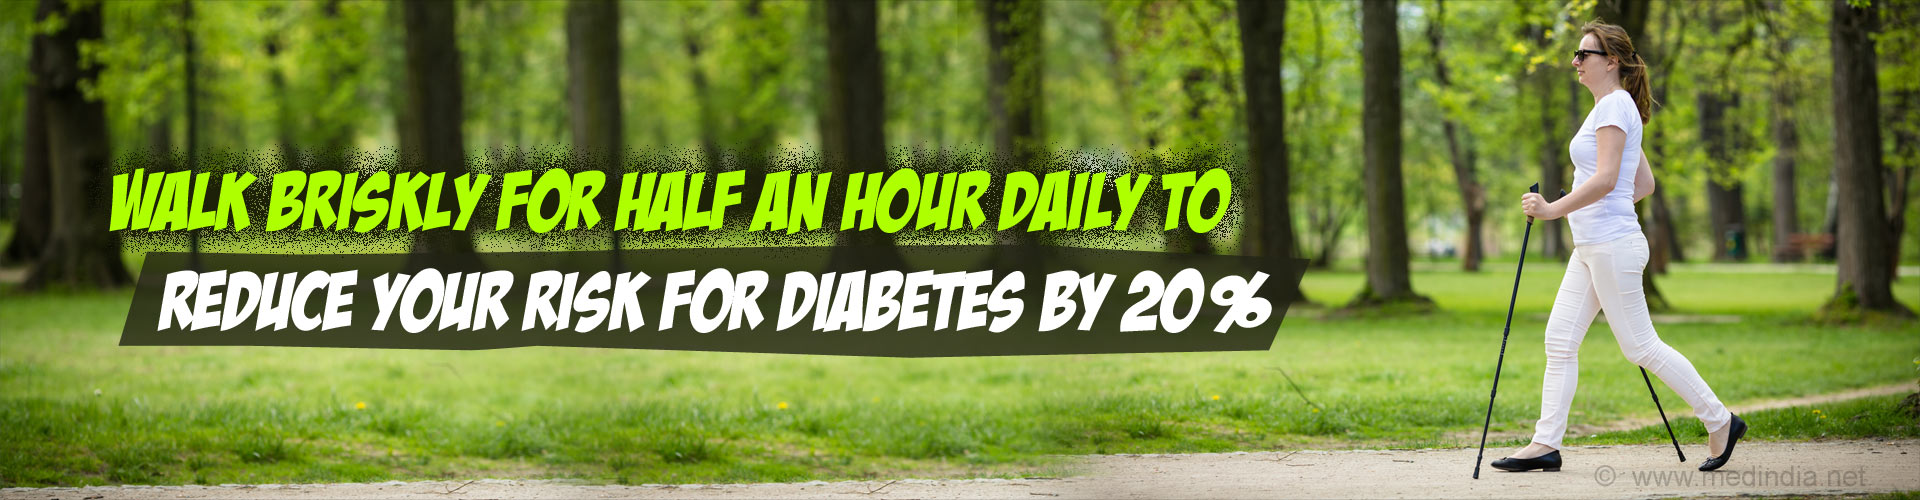 Walk briskly for half an hour daily to reduce your risk for diabetes by 20%.